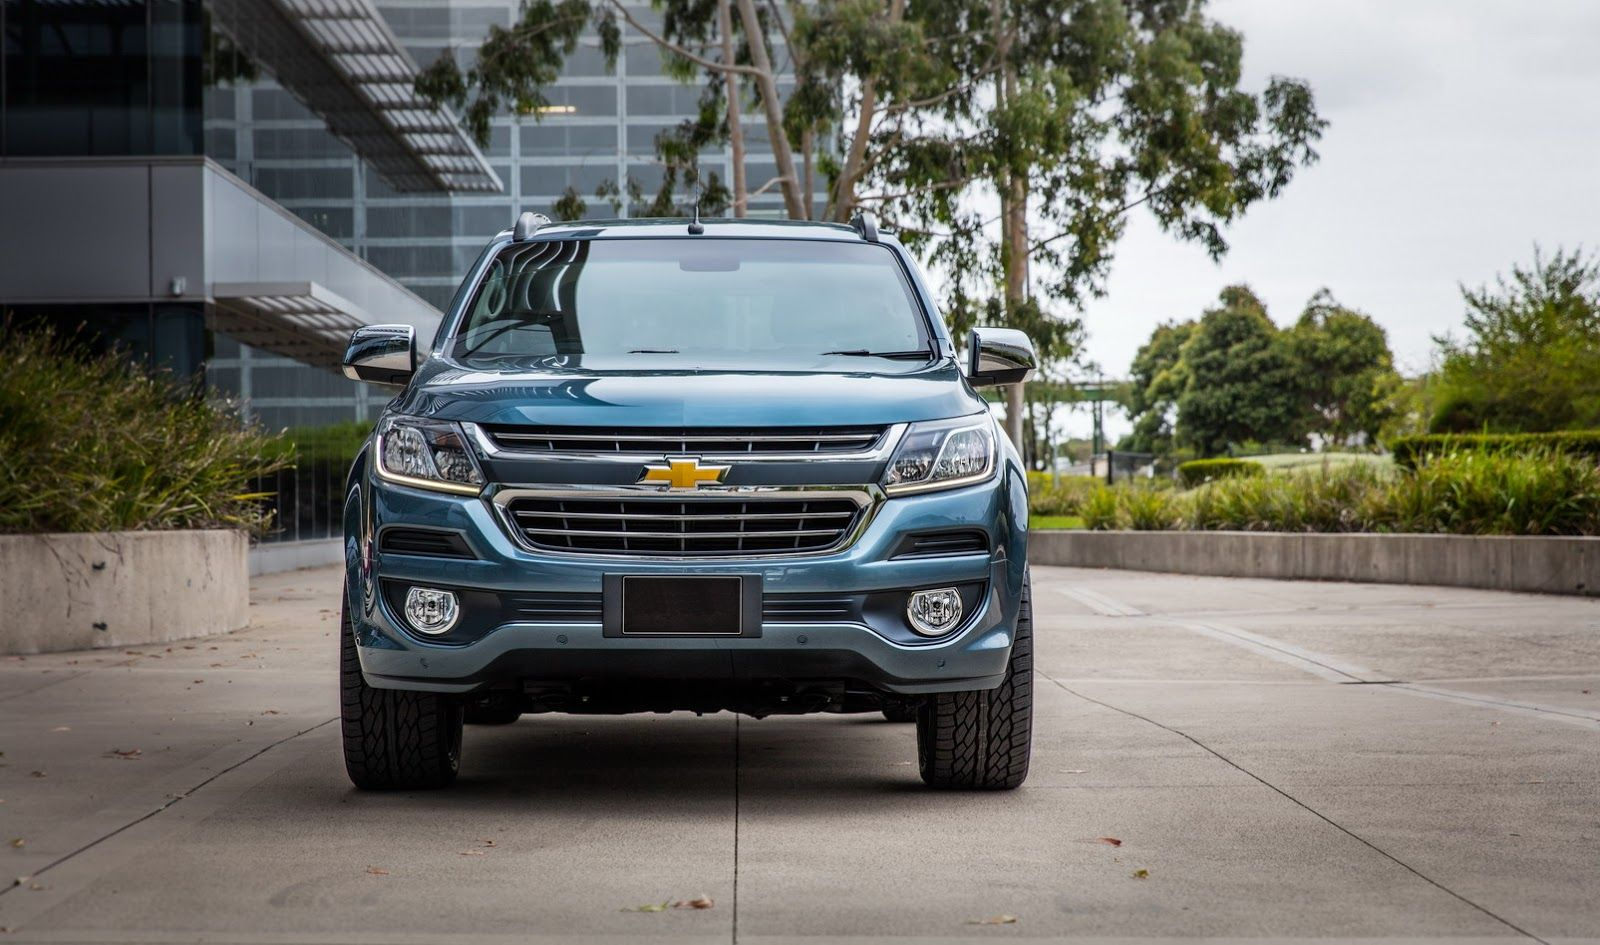 New Chevrolet Trailblazer 2017 India Launch Price